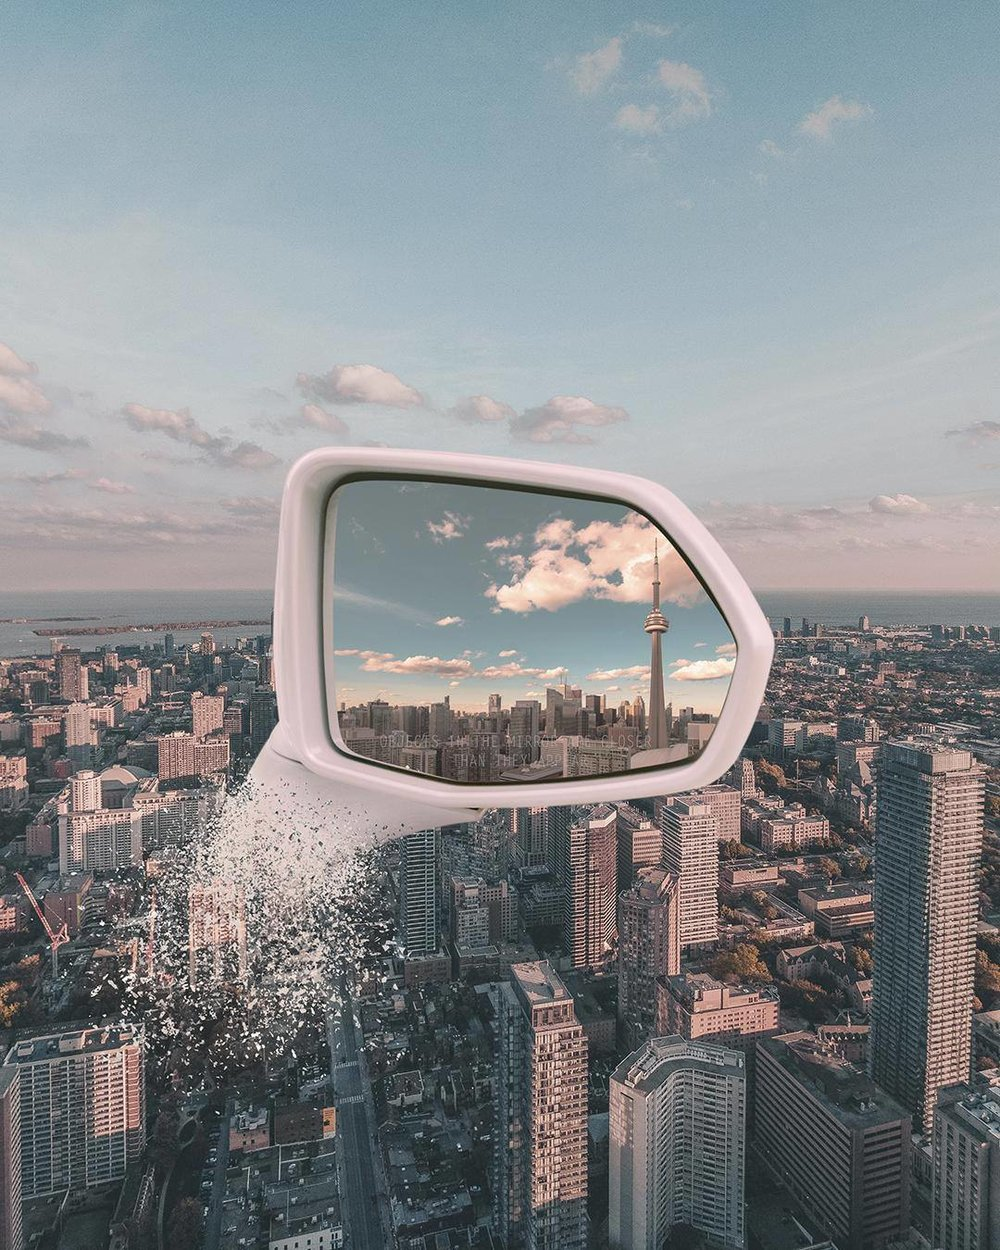 Change your perspective. #ATS